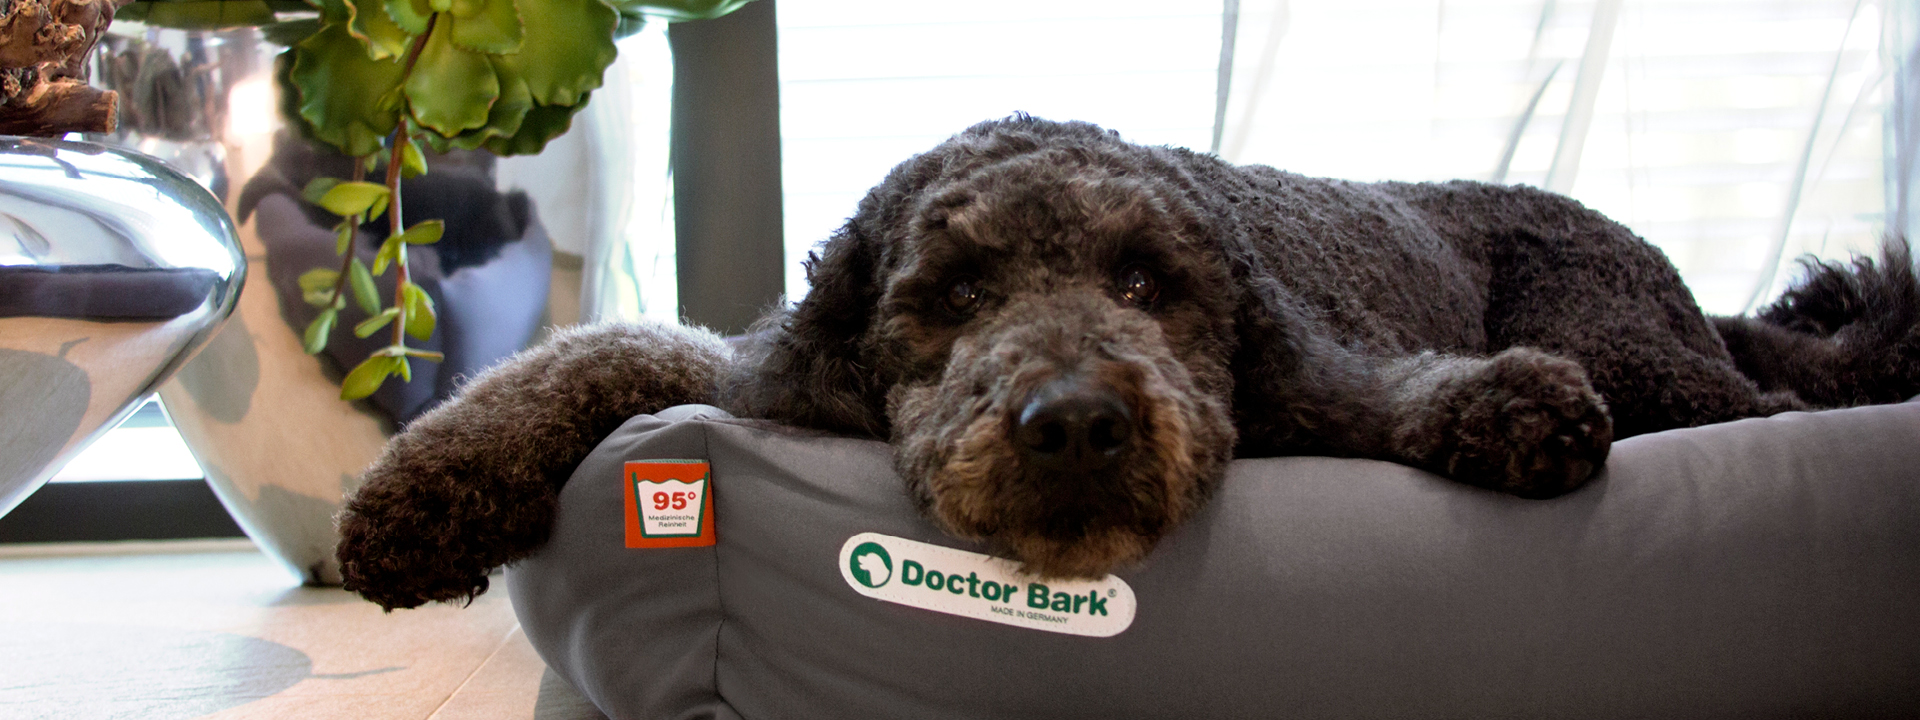 CONTENT-SLIDER-HEADDERBILDER-DOCTOR-BARK-1920x720